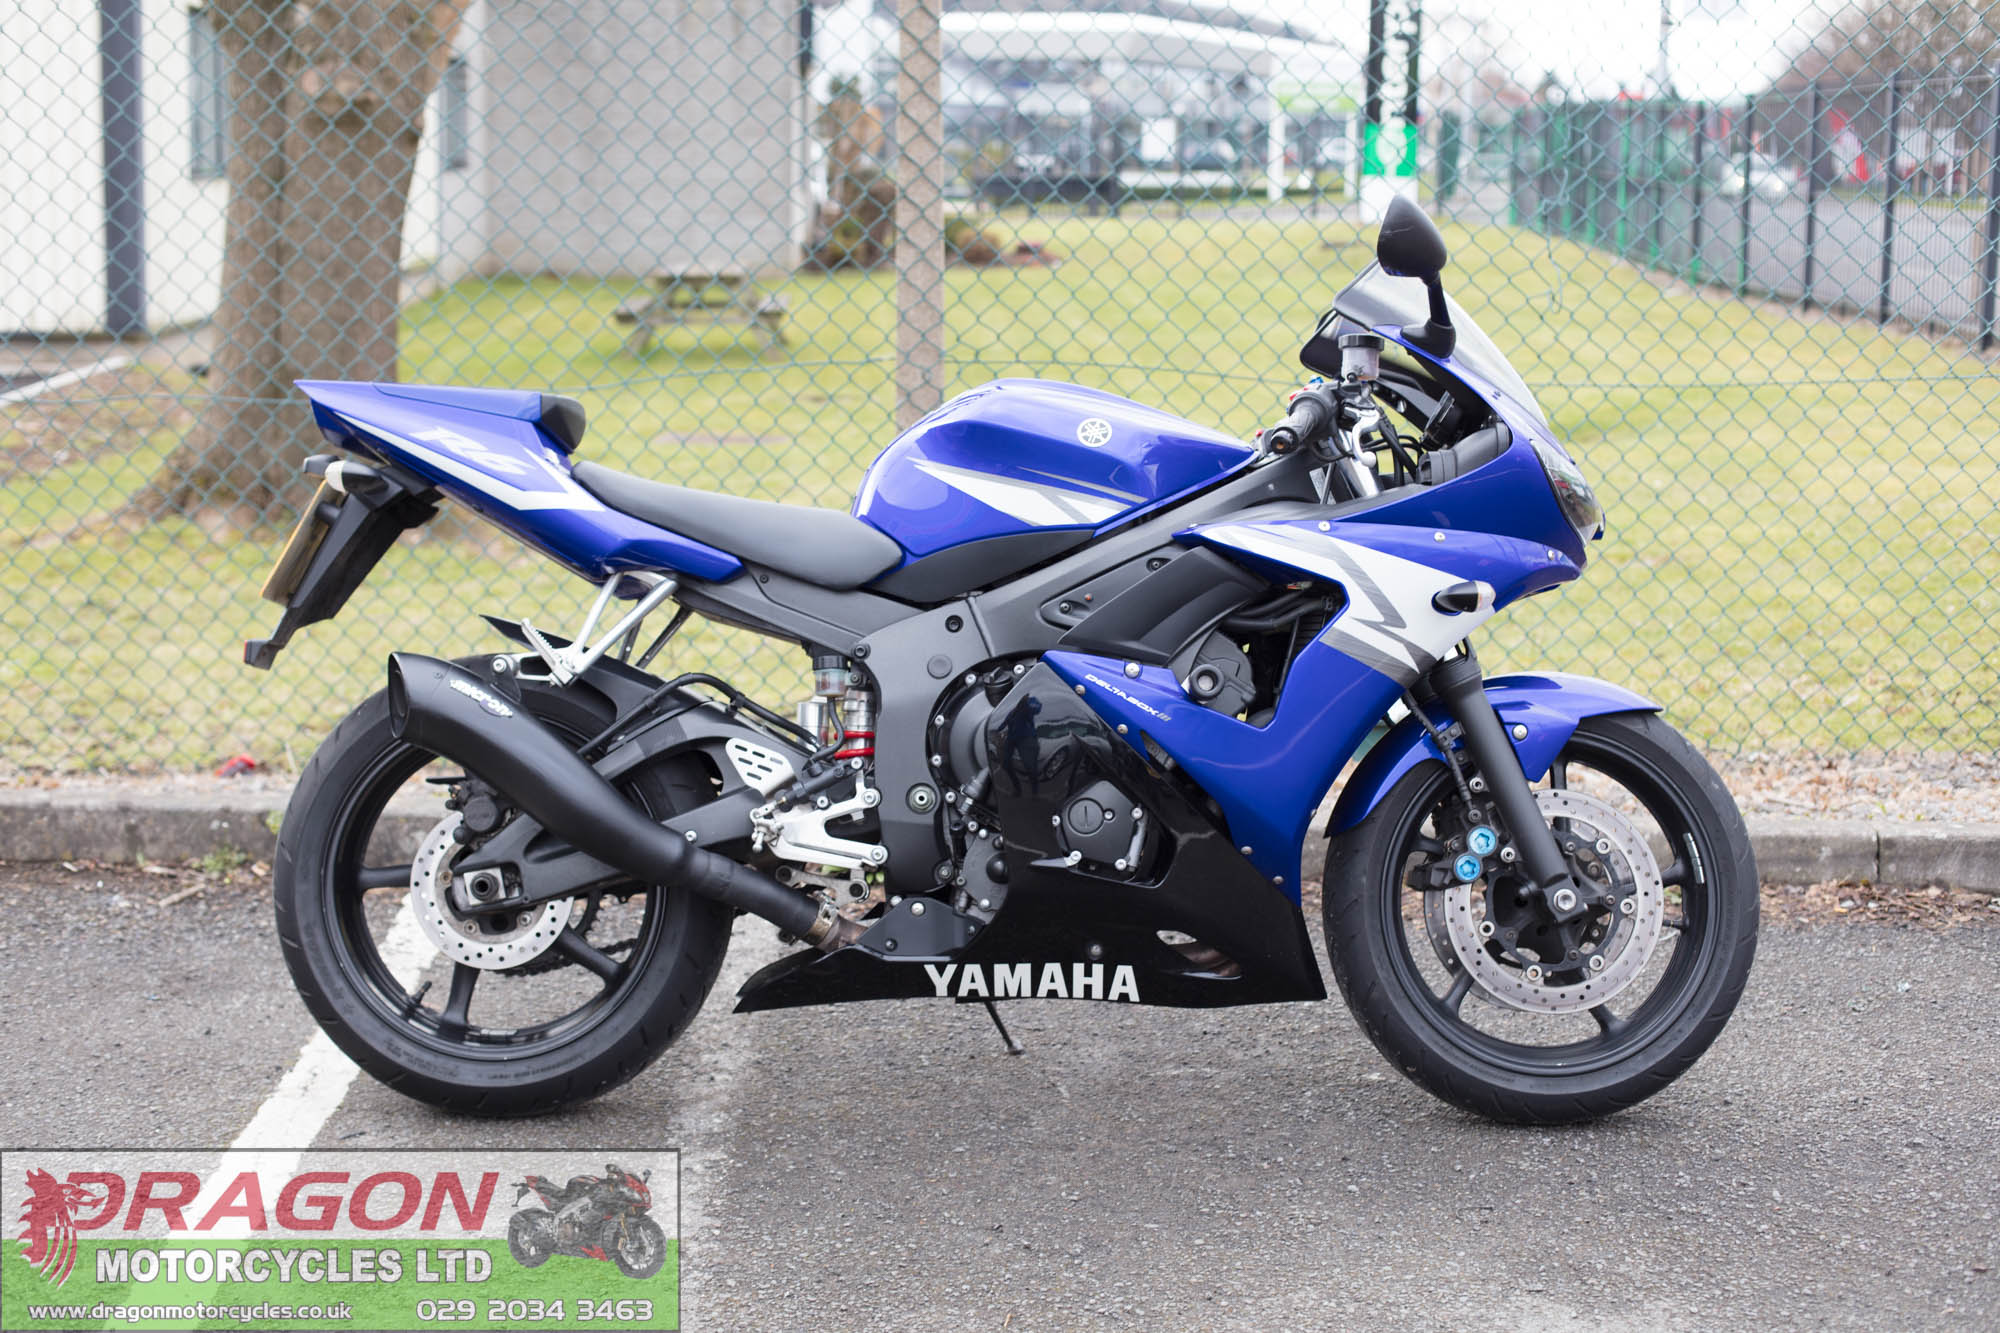 2004 yamaha yzfr6 yzfr6s motorcycle service manual engine and transmission array for sale 2004 yamaha yzf r6 blue six speed manual 3495 00 rh dragonmotorcycles fandeluxe Images